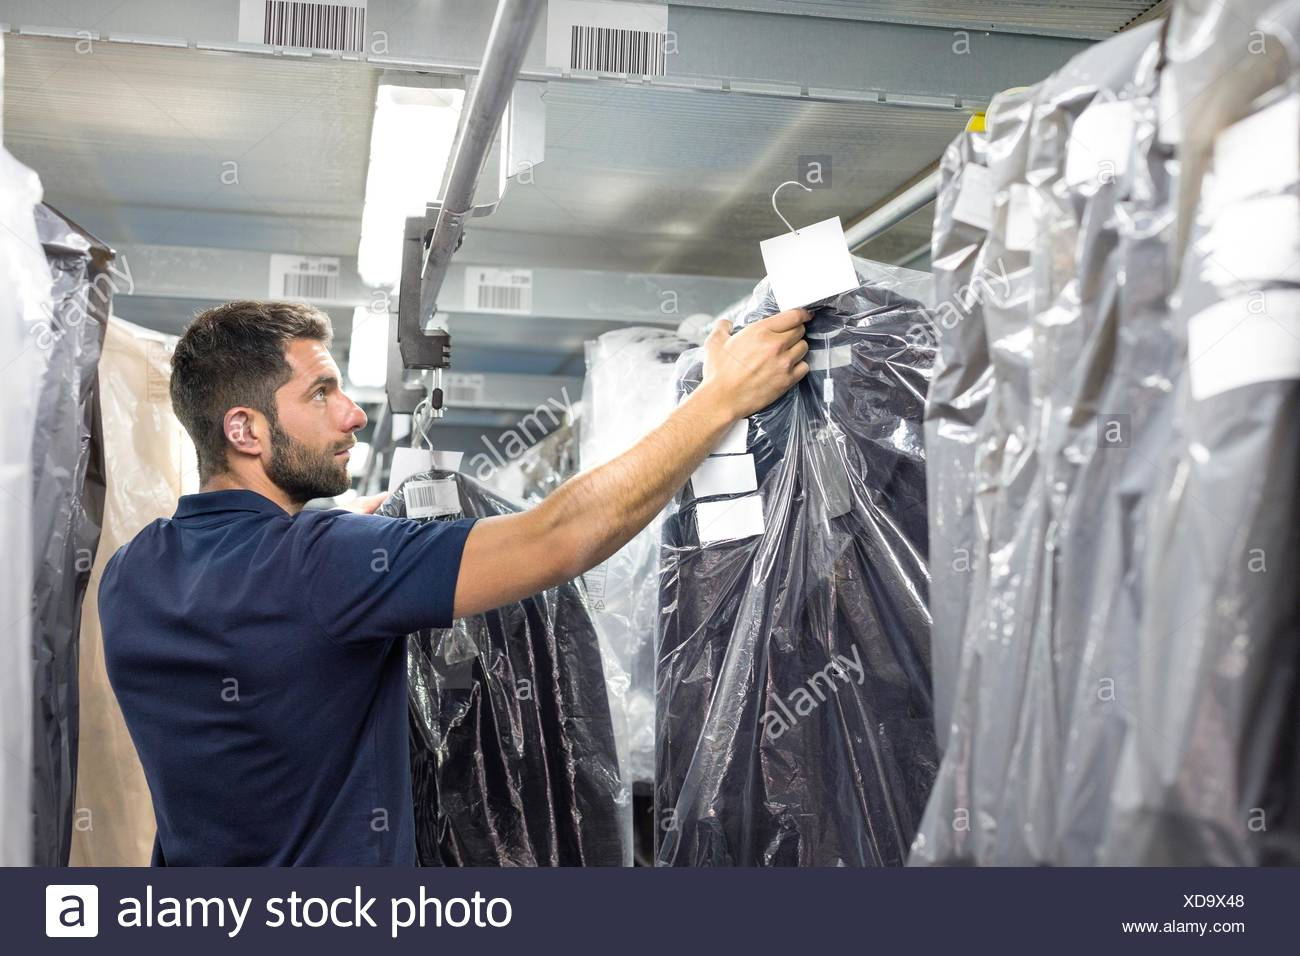 Male warehouse worker stock taking in distribution warehouse - Stock Image